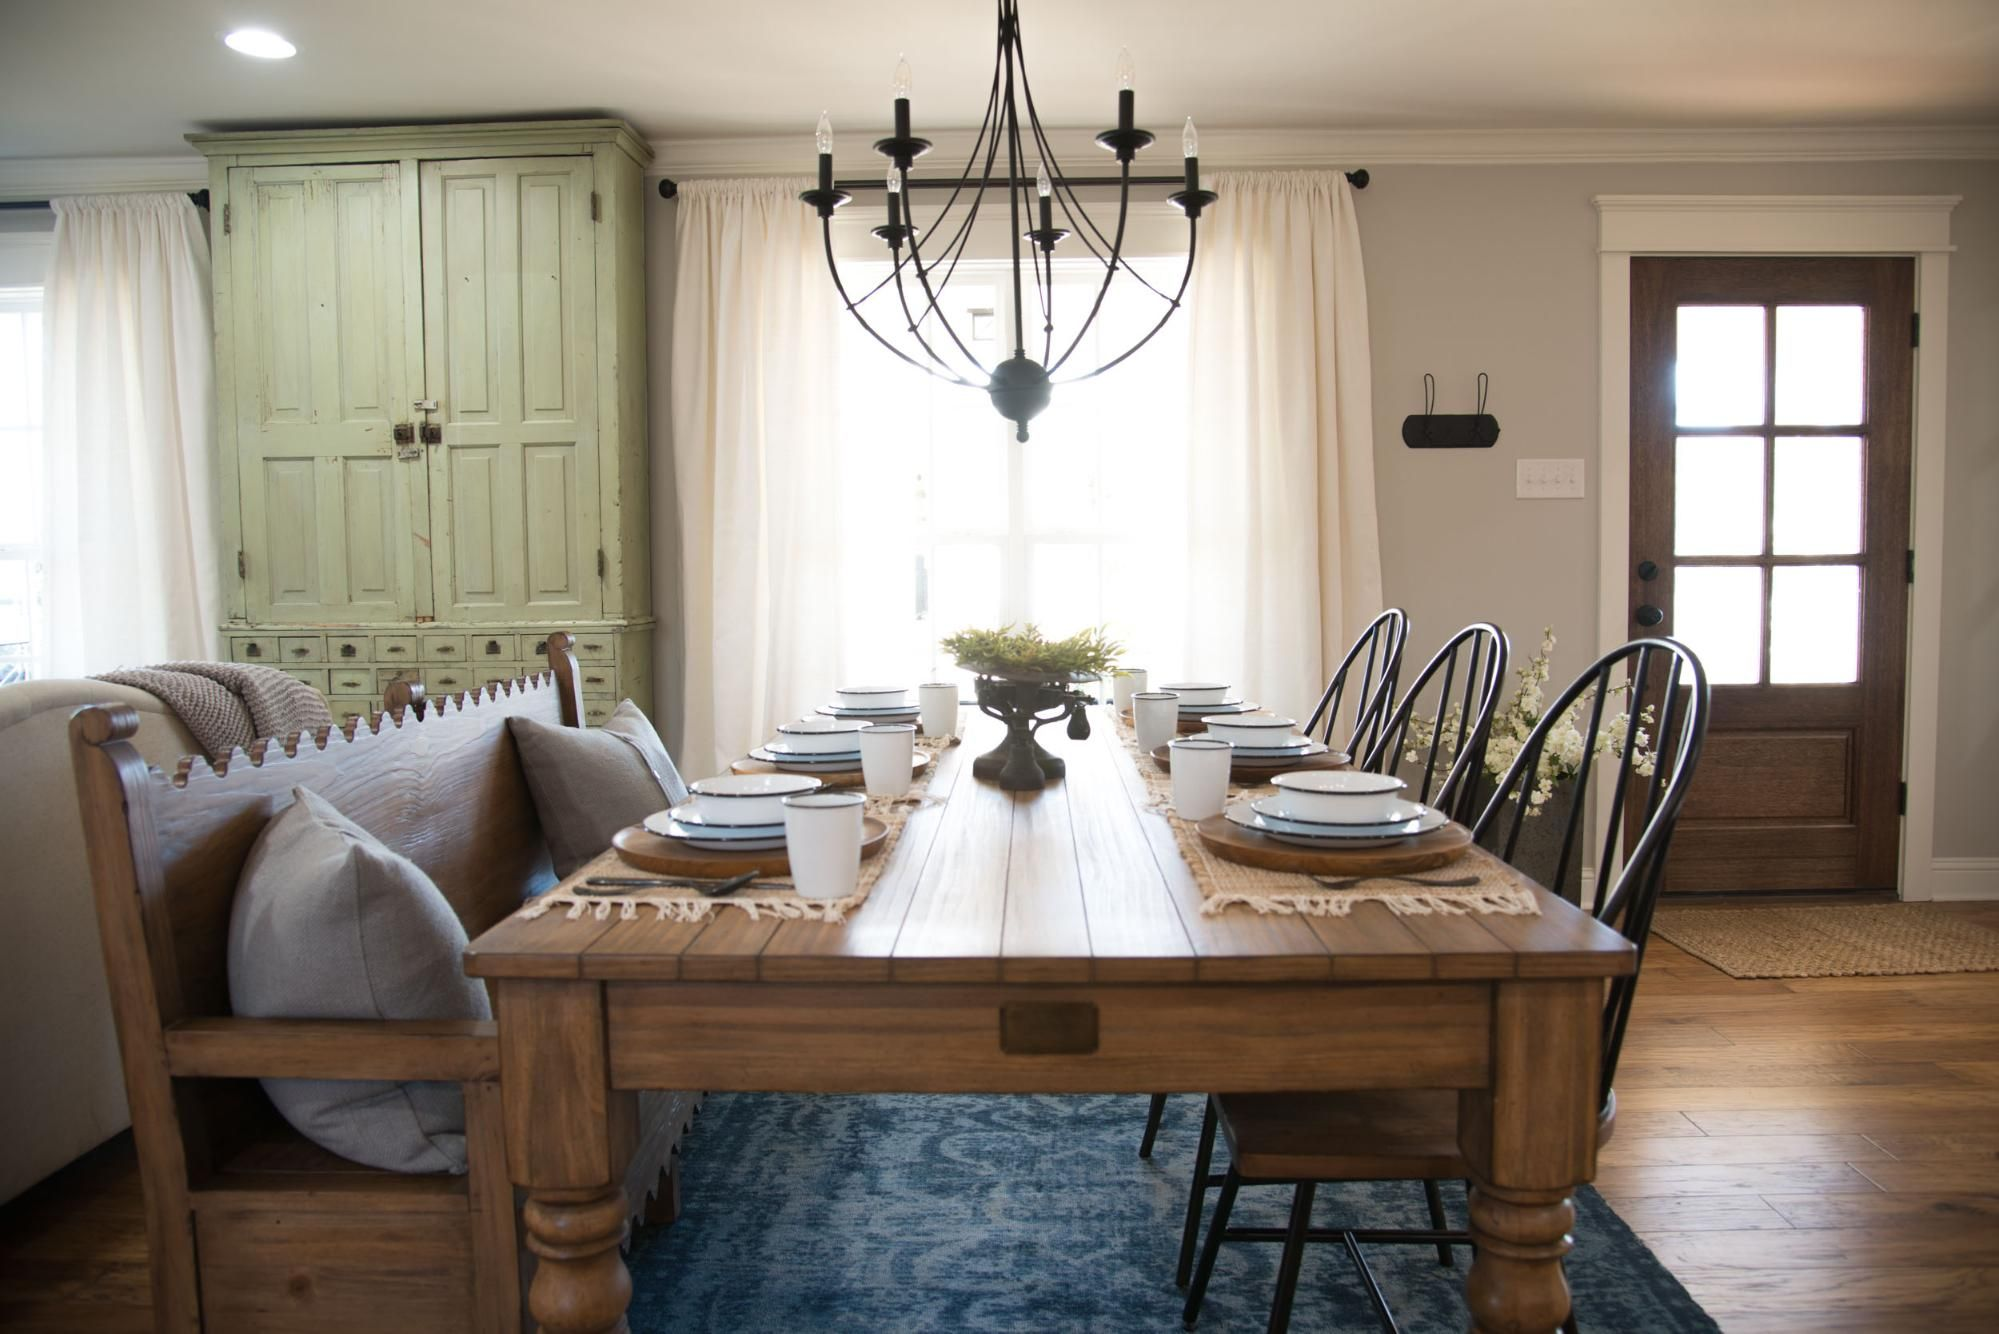 Fixer upper kitchen table decor - The Dining Room Was More Of A Transitional Space From The Entry To The Living Space But It Was Close To The Kitchen And Became The Perfect Area To Hang A